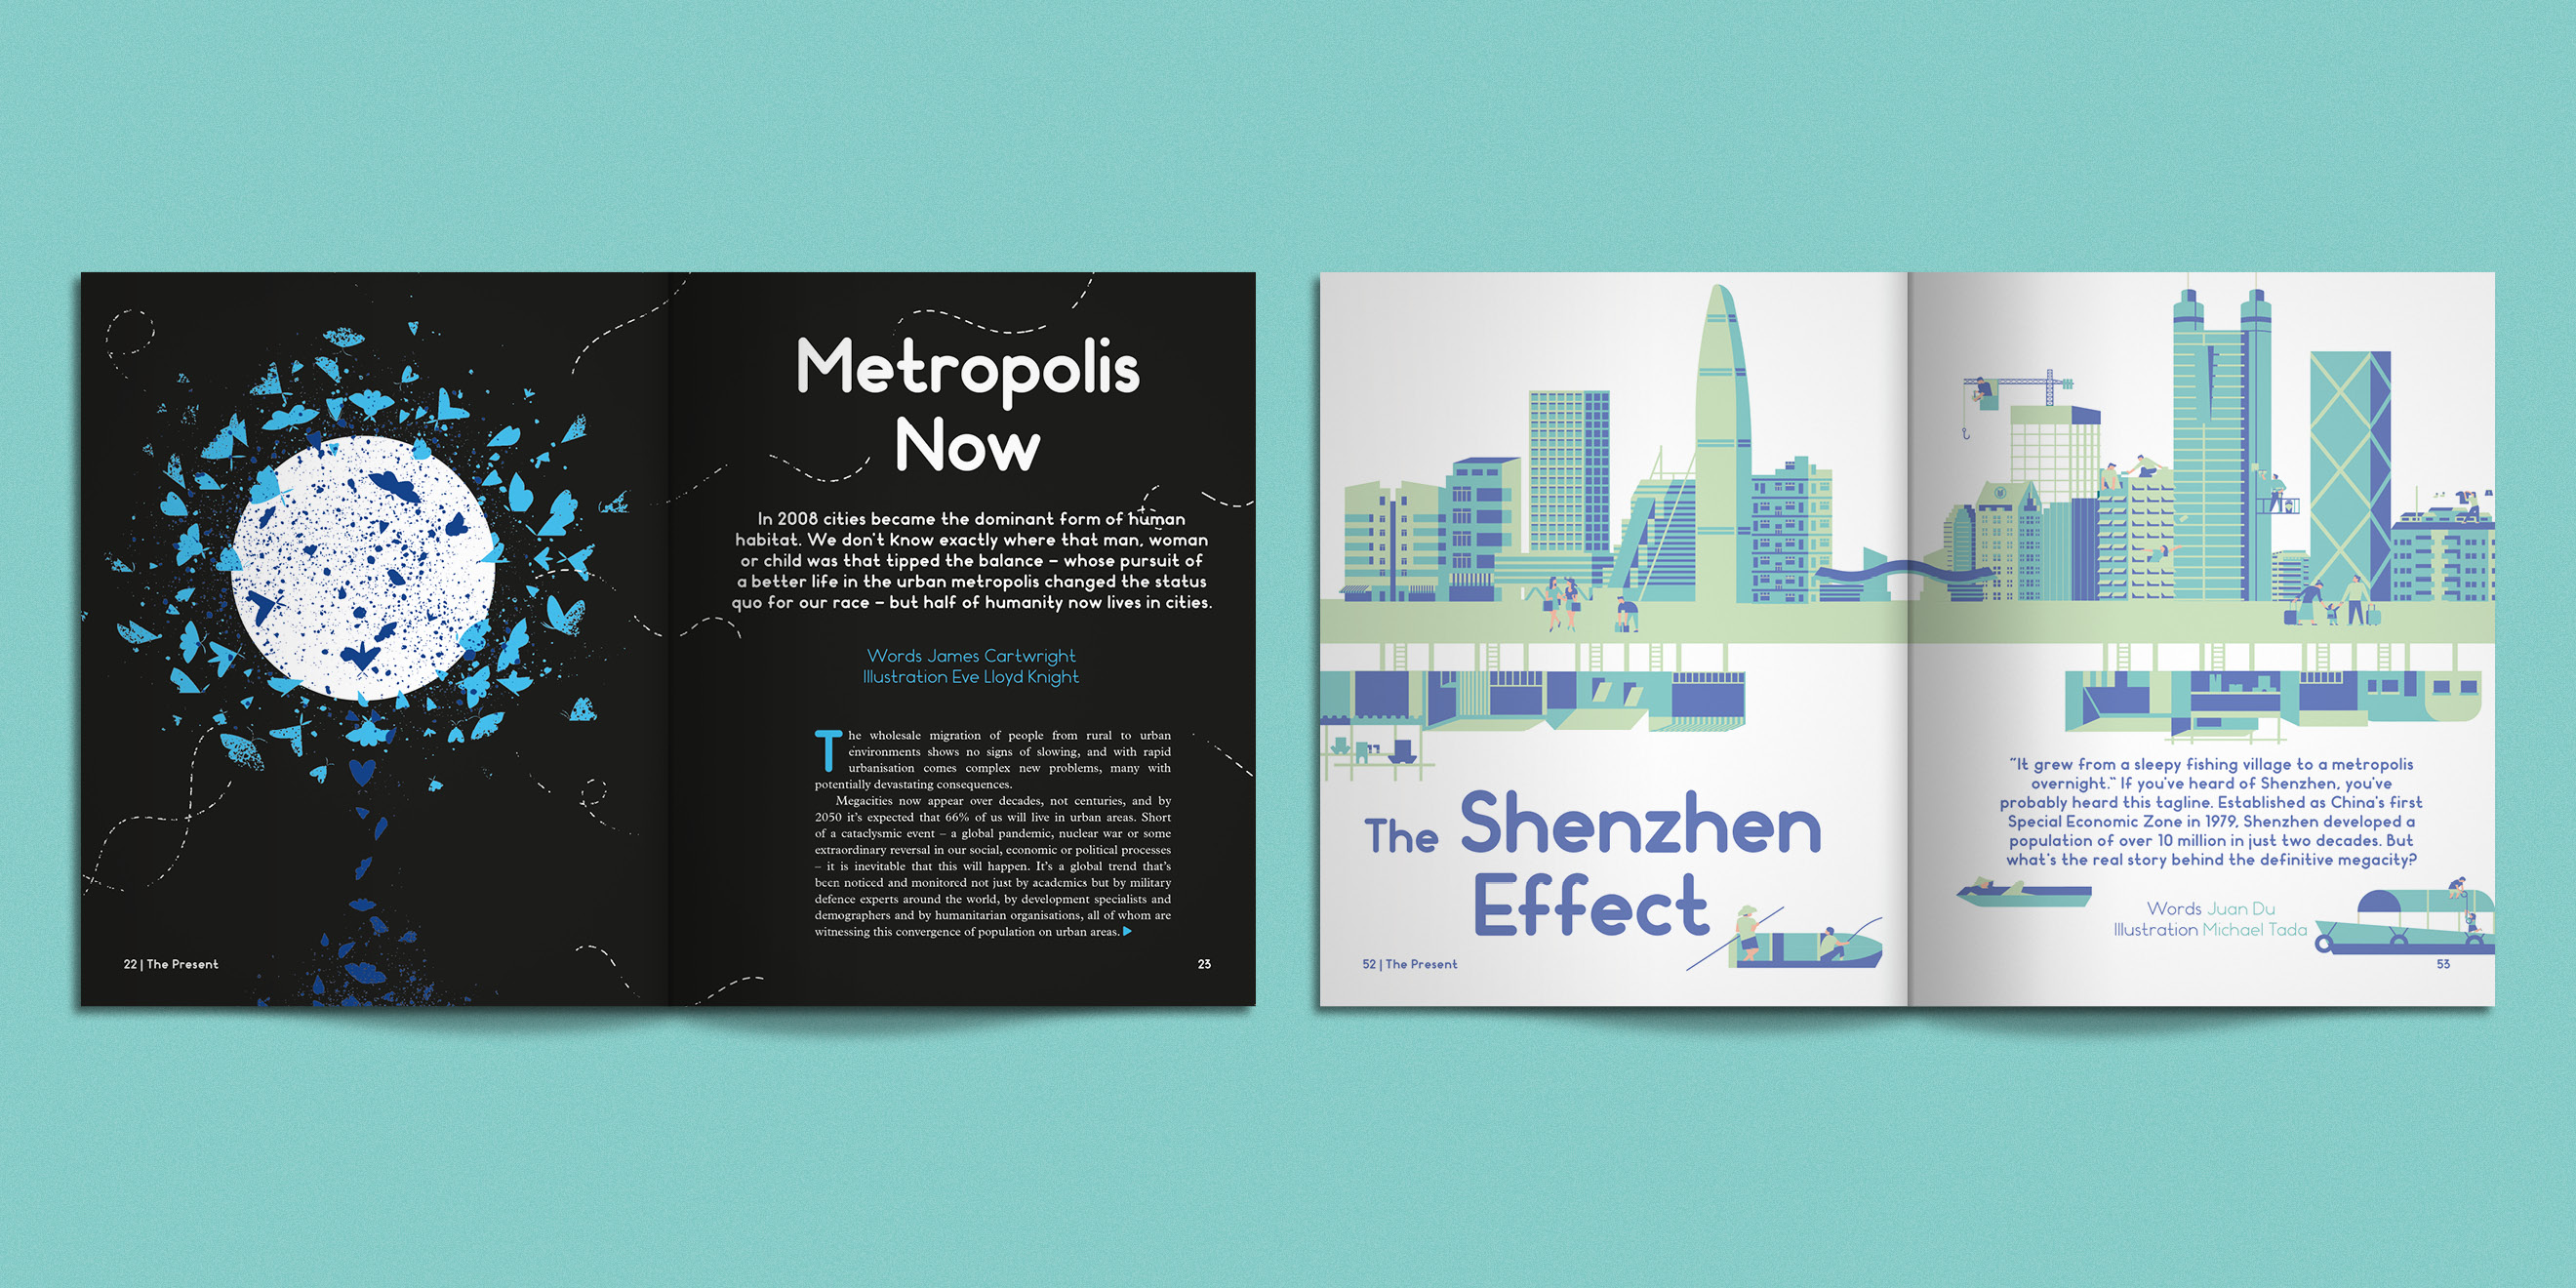 Editorial design from Weapons of Reason: Megacities - image 1